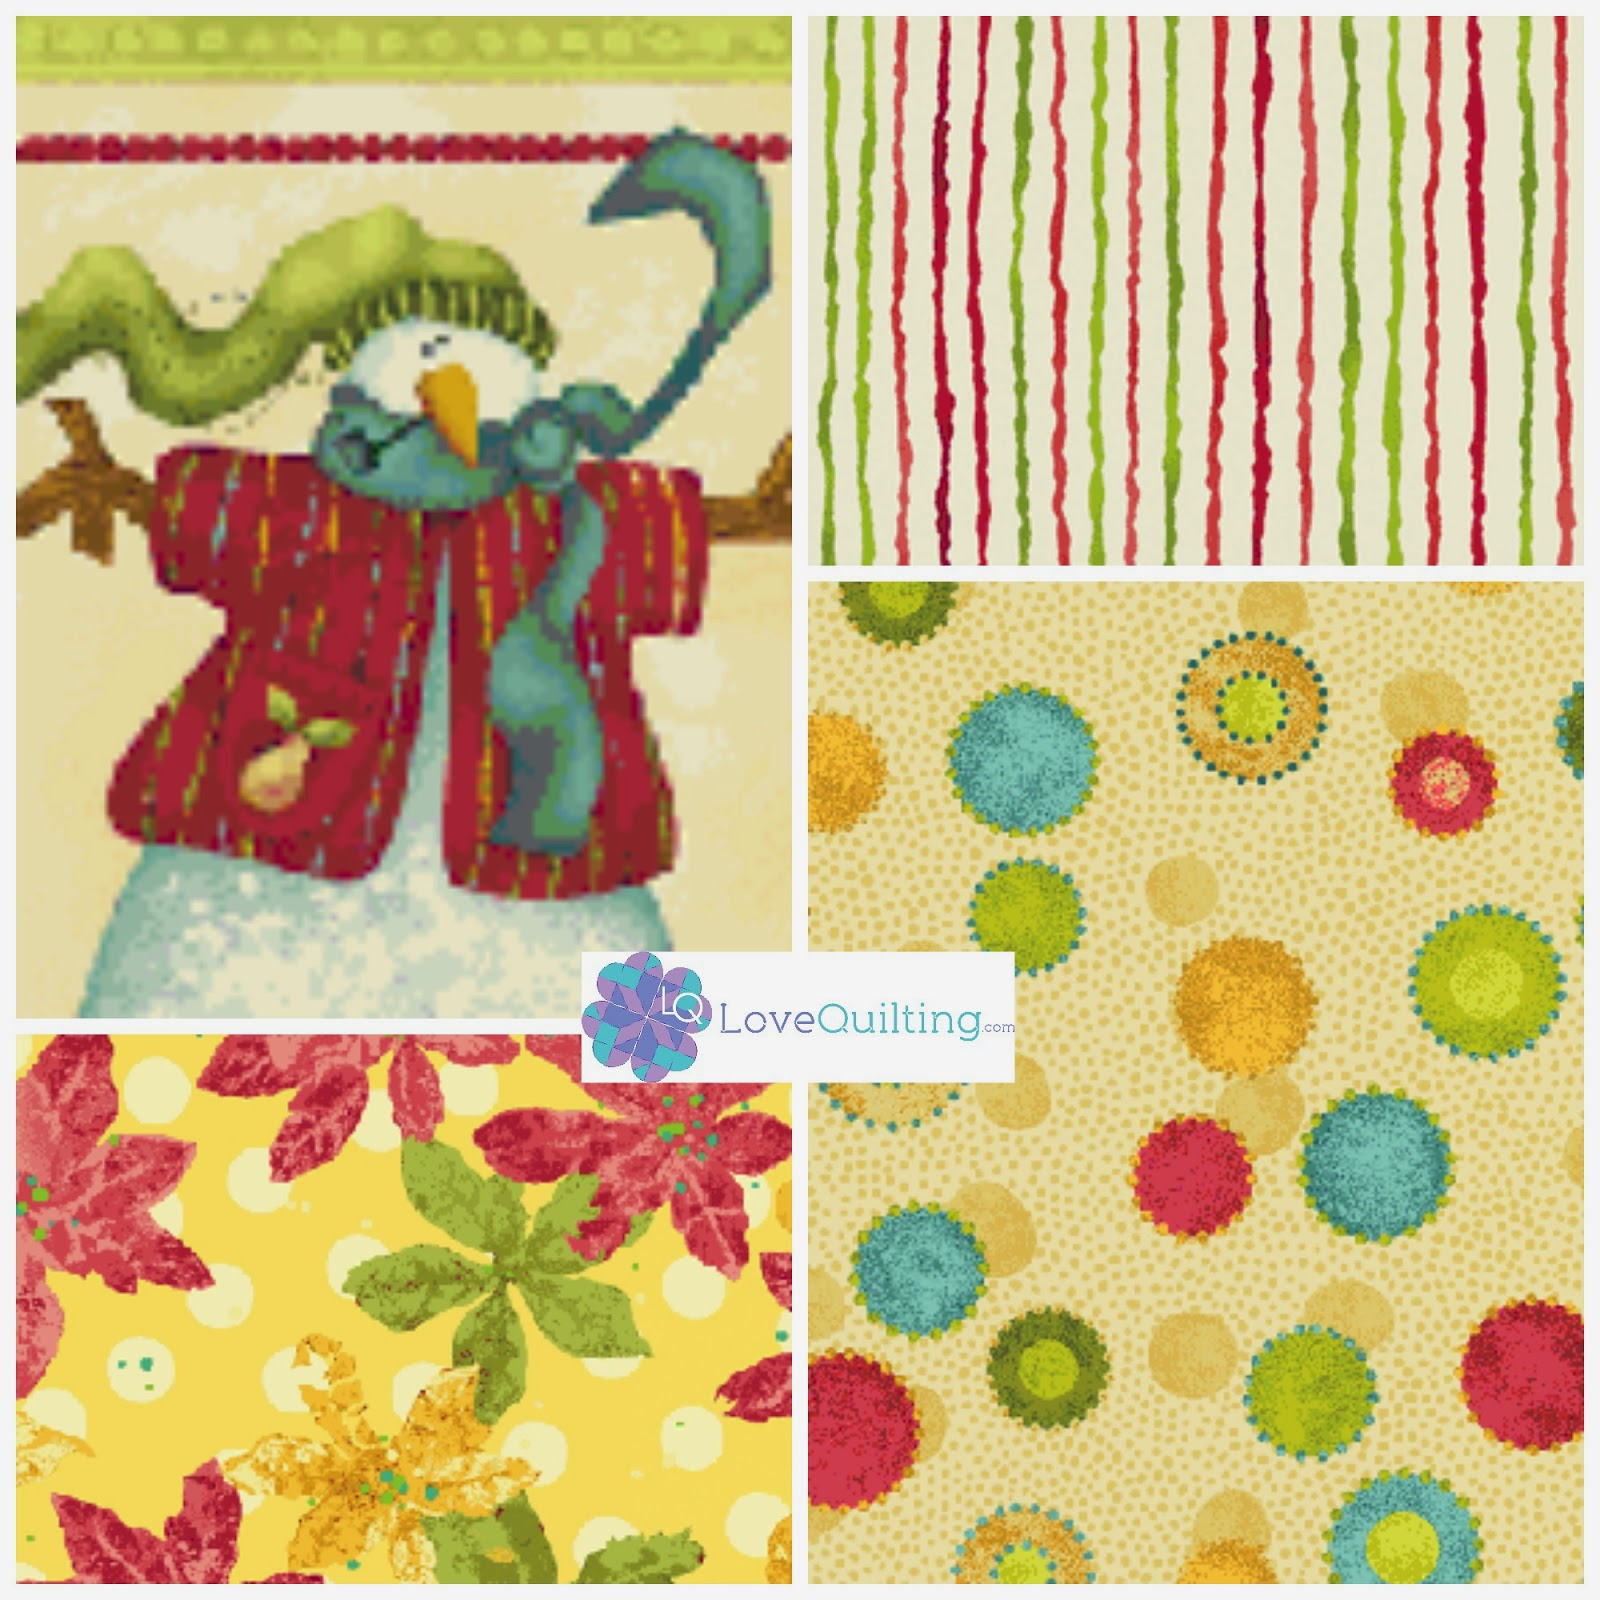 http://www.lovequilting.com/product-category/fabric/page/3/?filtering=1&filter_theme=194